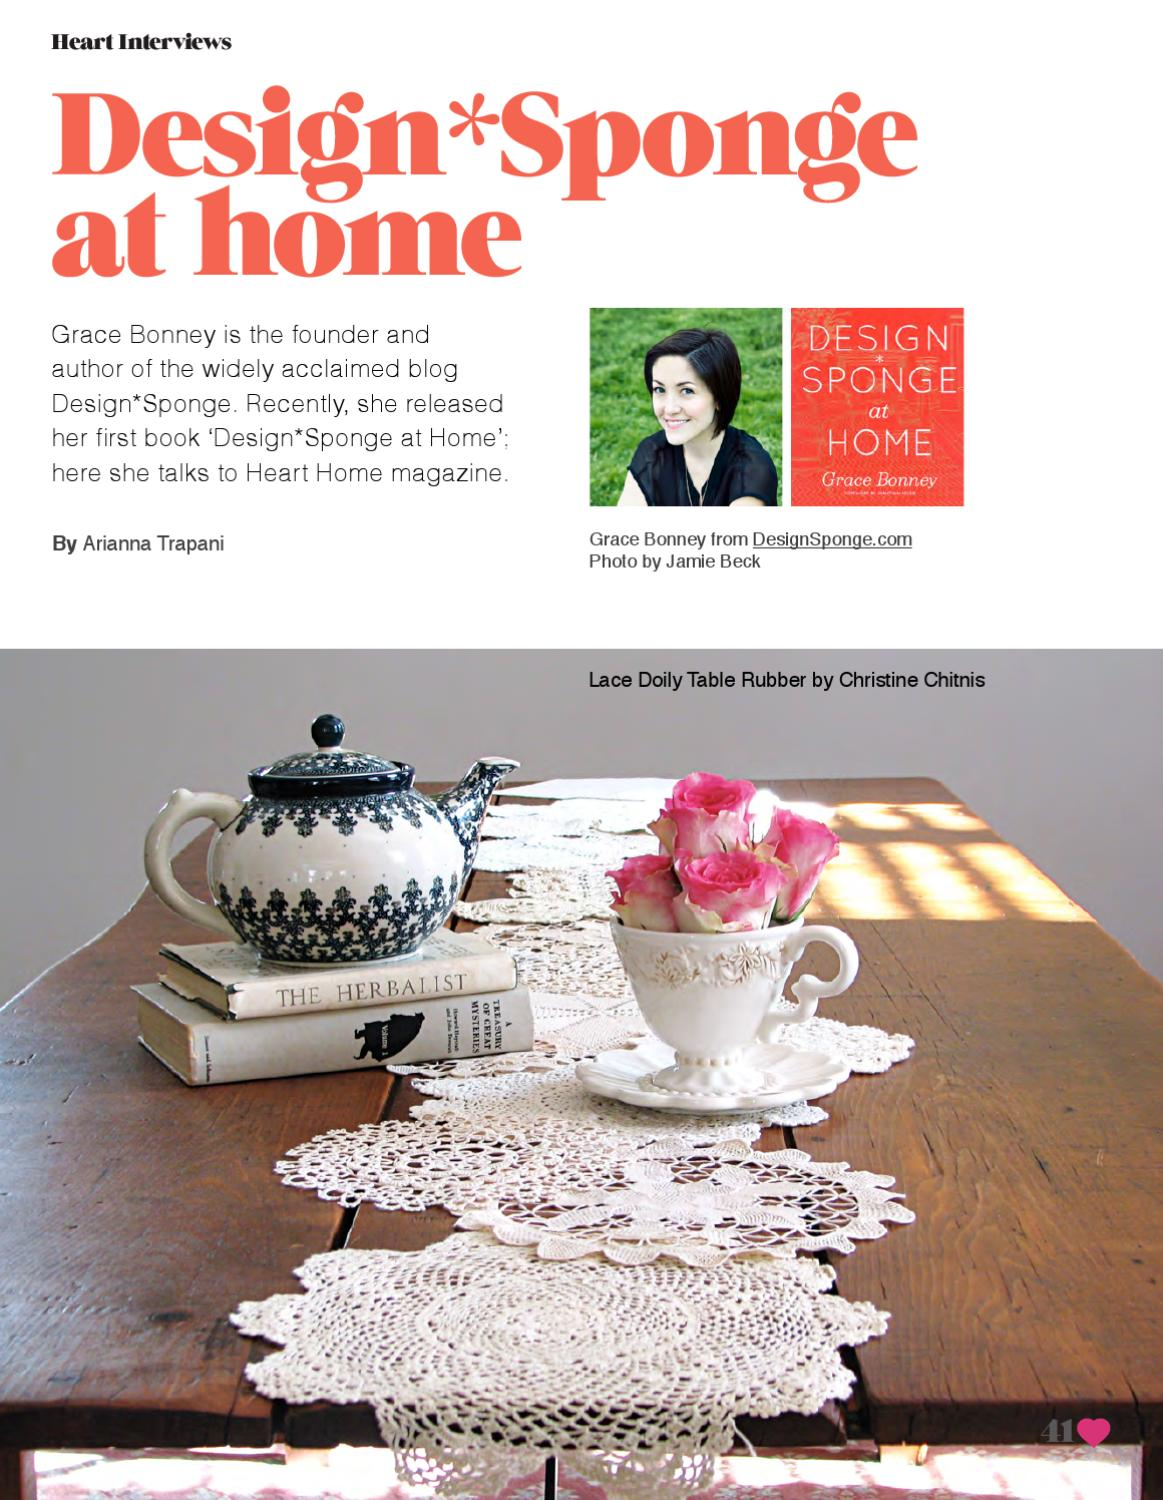 Heart Home magazine issue 2 by Heart Home magazine - issuu